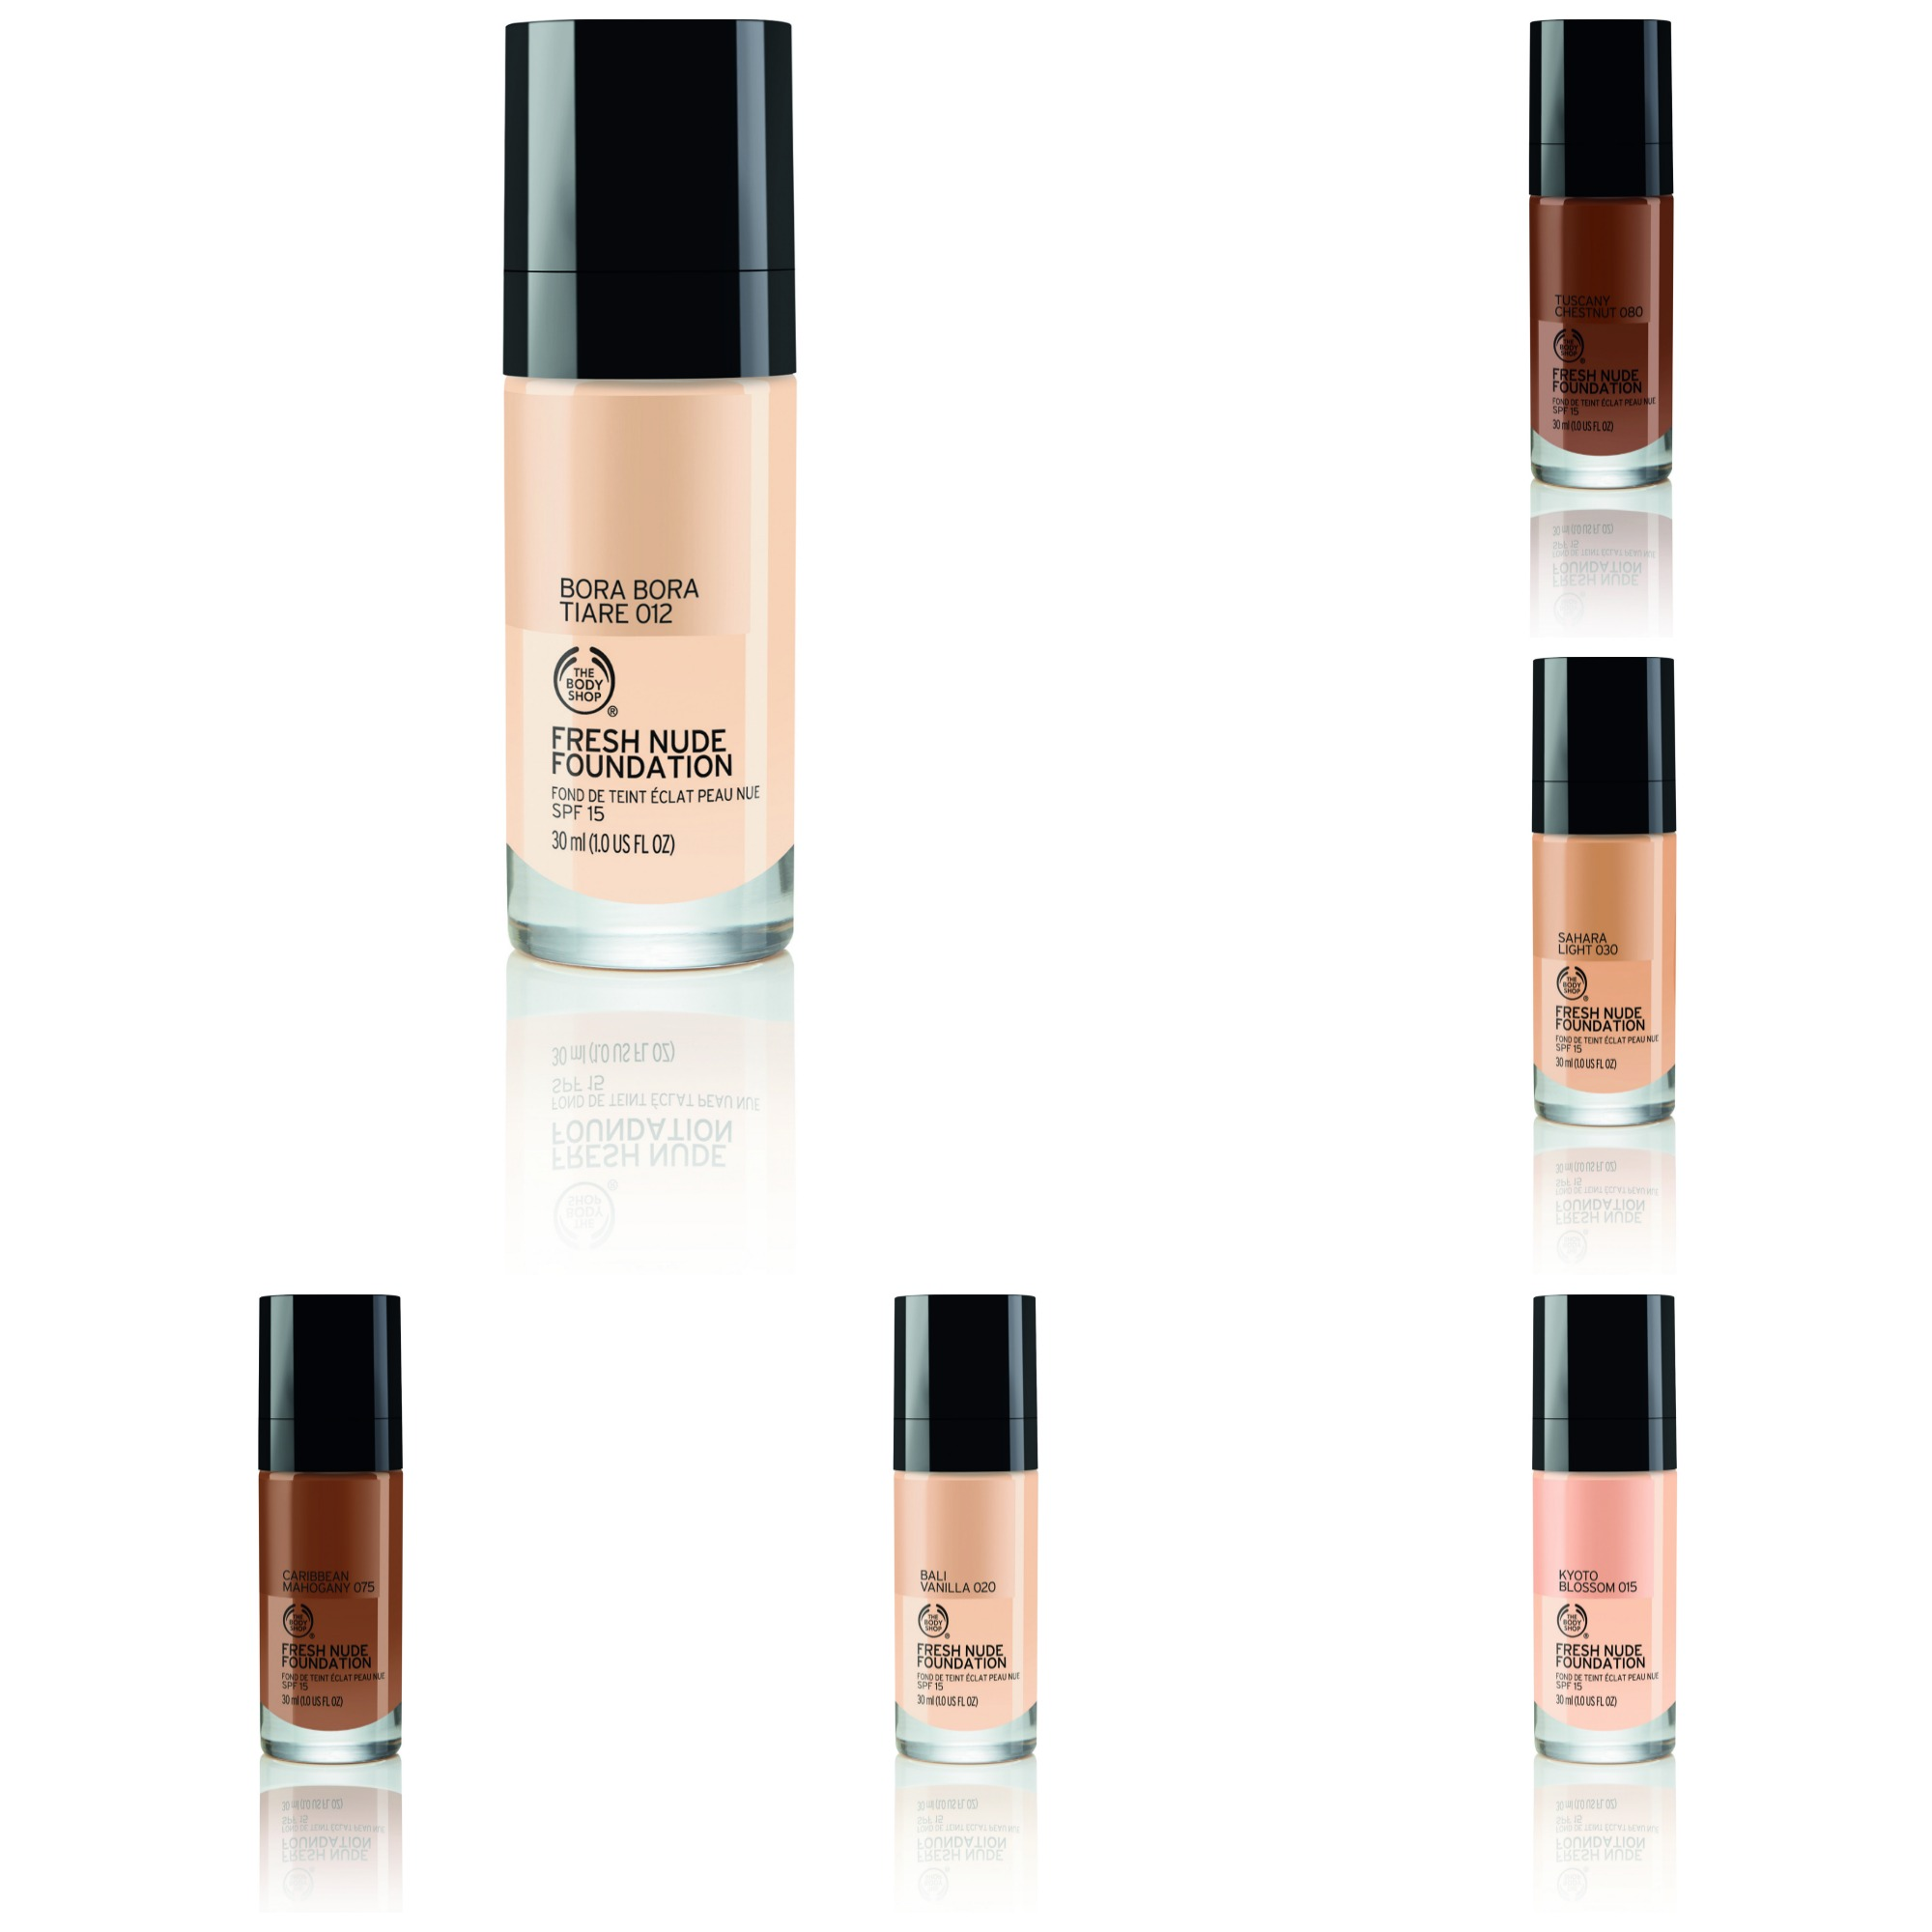 fresh-nude-foundation-by-the-body-shop-savoir ville